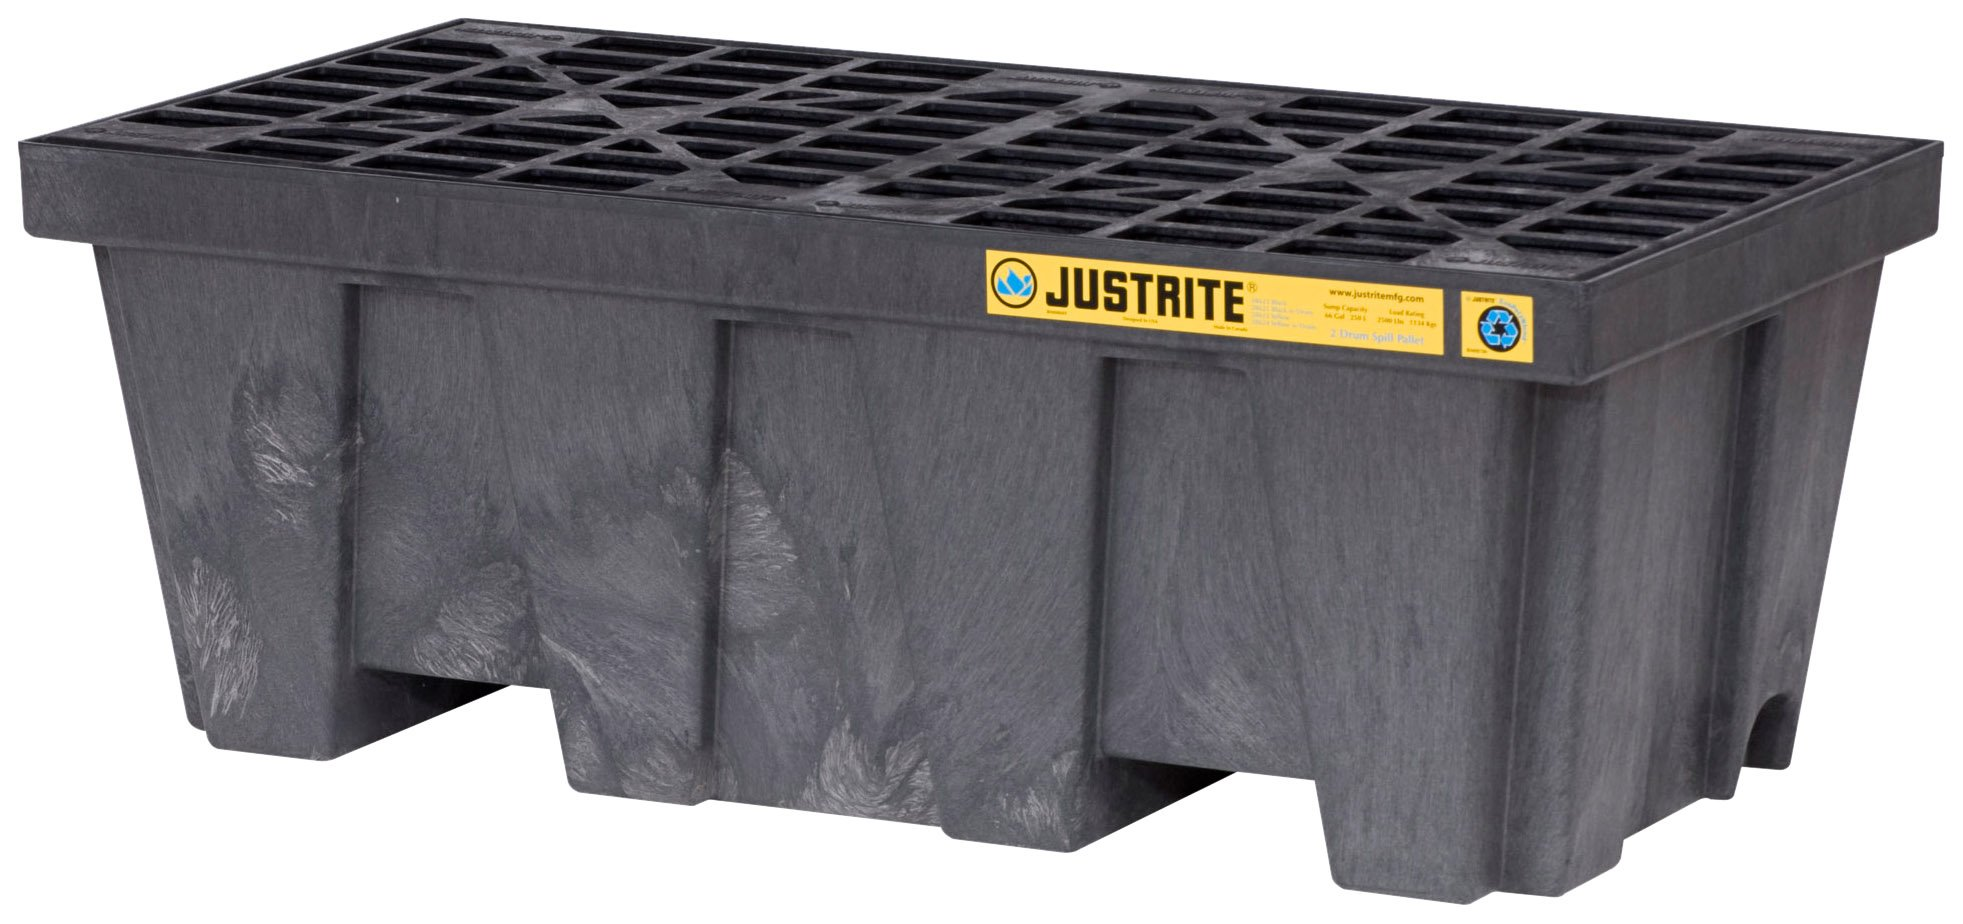 Justrite 28625 EcoPolyBlend 66 Gallon Sump Capacity, 49'' x 25'' x 18'' (LXWXH) Black 2 Drum Pallet With Drain